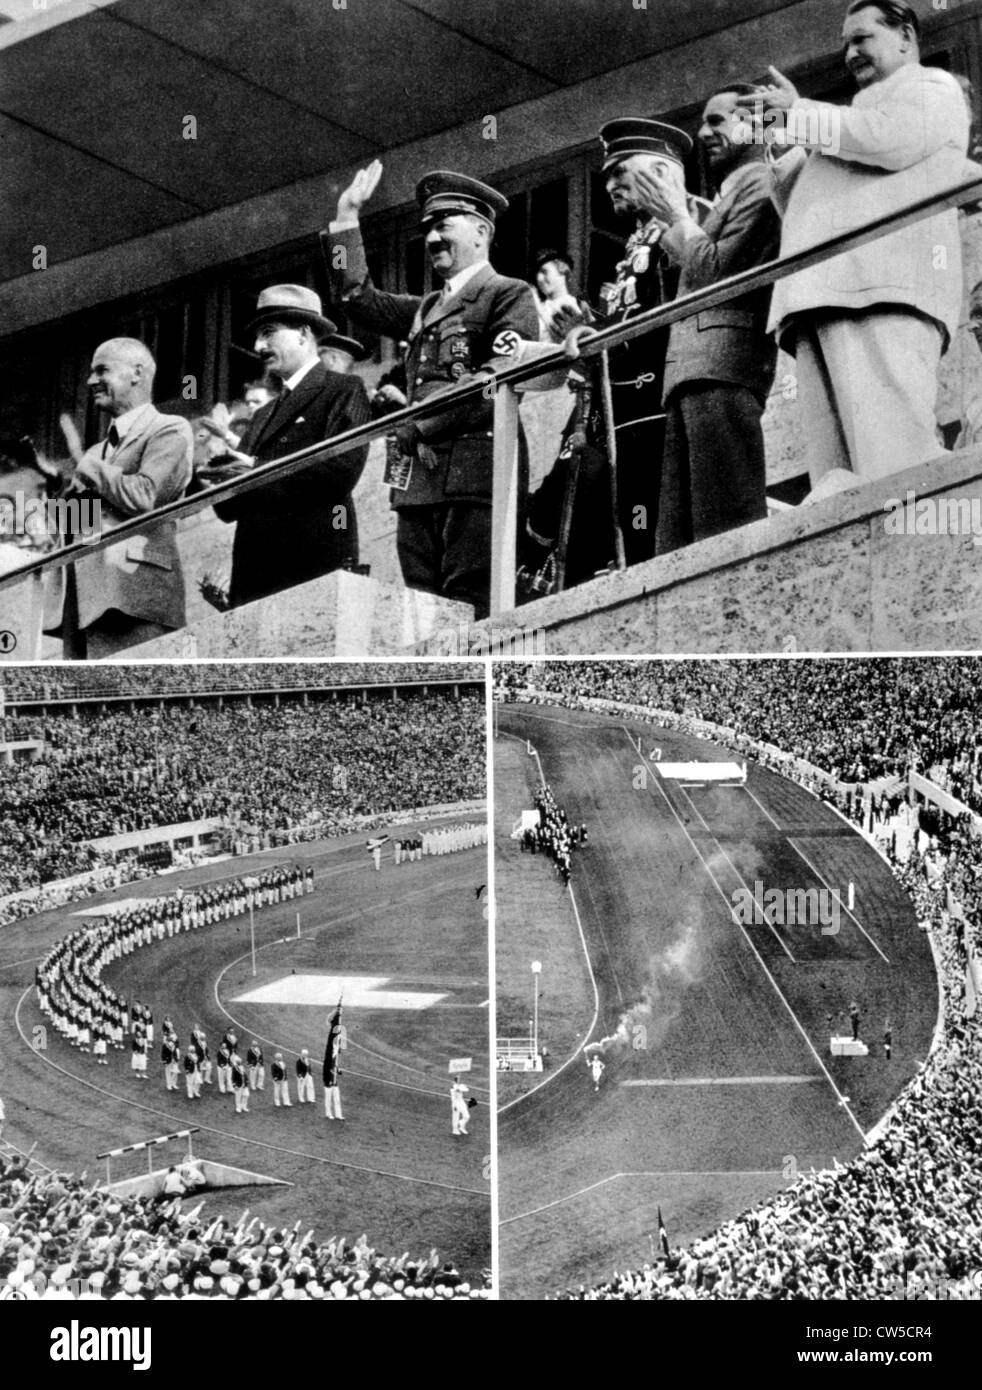 Berlin Olympic Games, the opening ceremony at the stadium - Stock Image